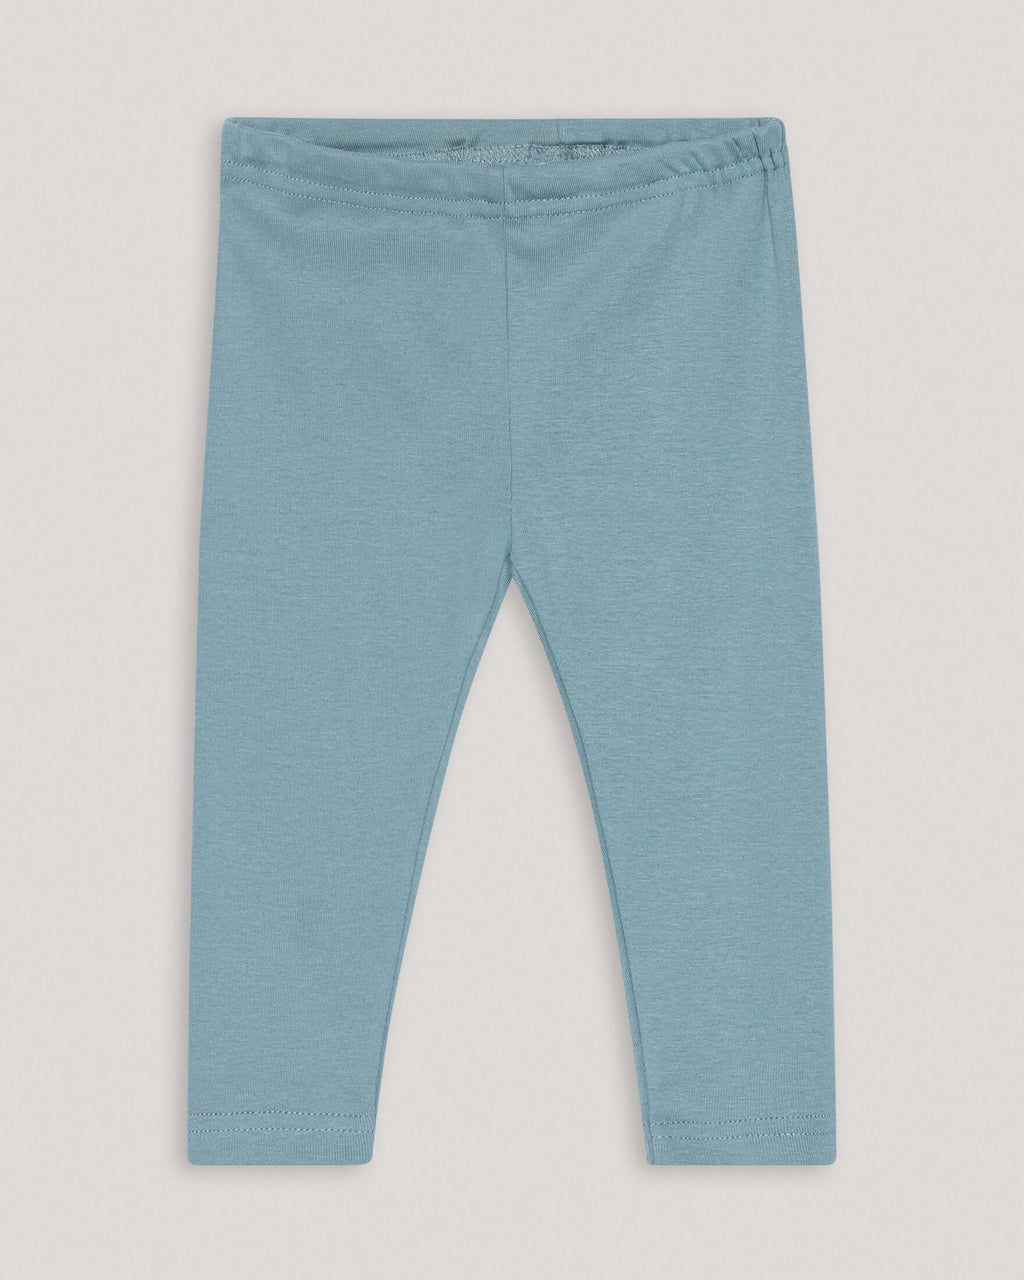 variant_2 | EN Blue basic Leggings for kids and babies  | DE Blaue Leggings für kinder und babies